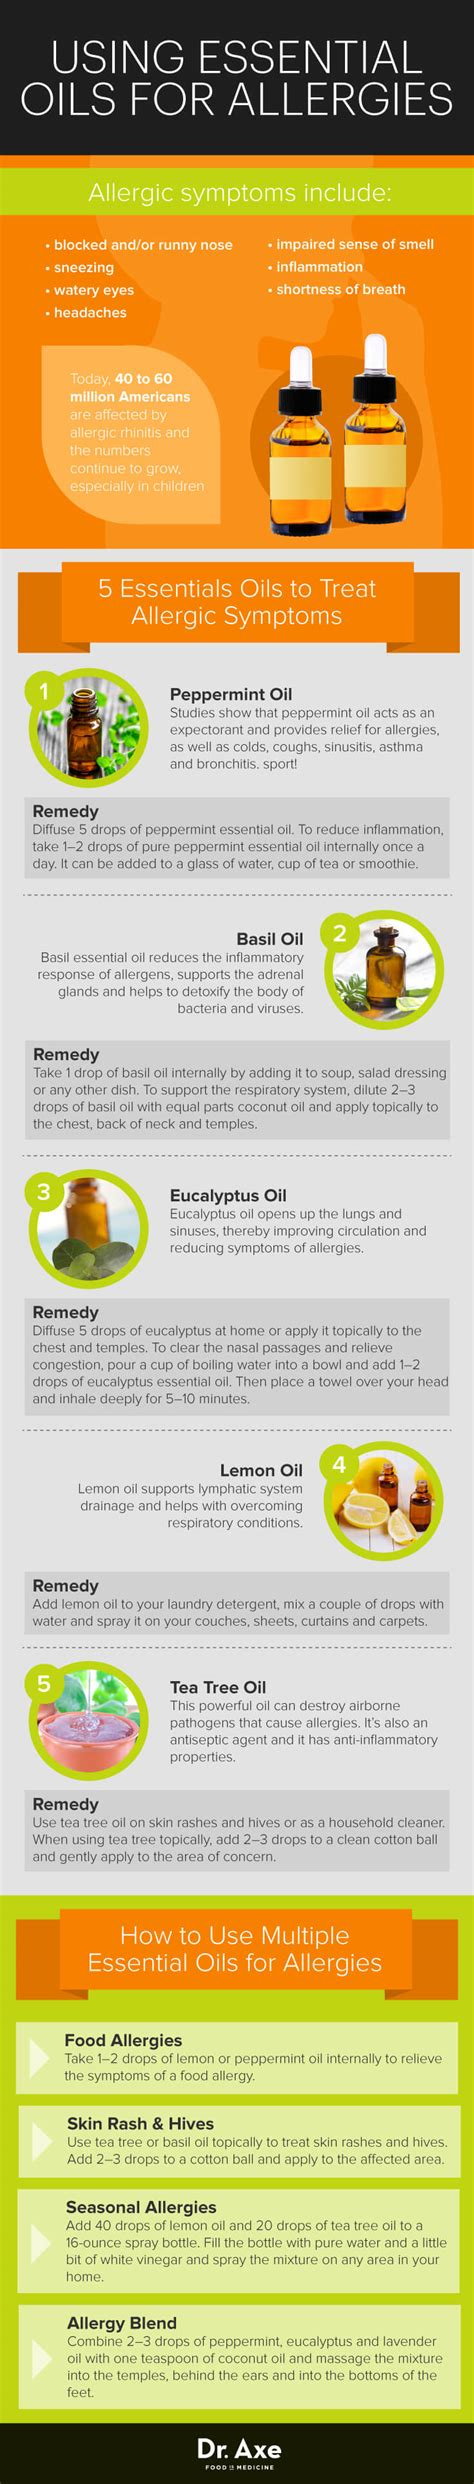 essential oils for allergies top 5 essential oils for allergies dr axe